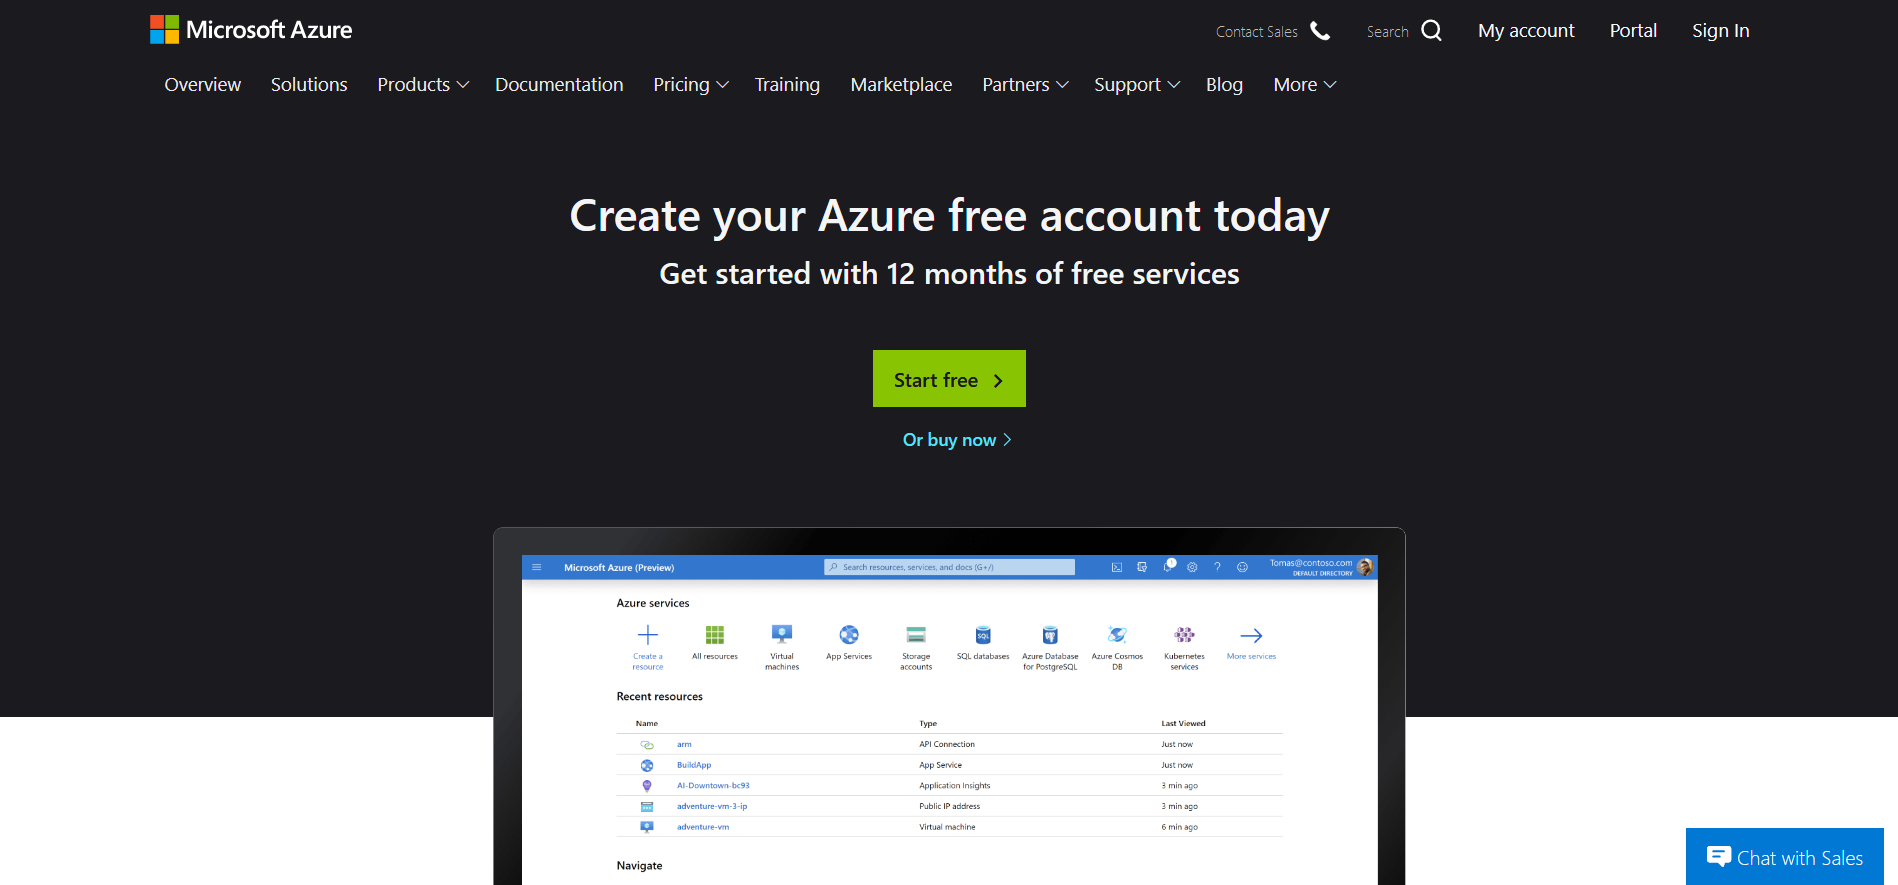 Azure_Create_Account